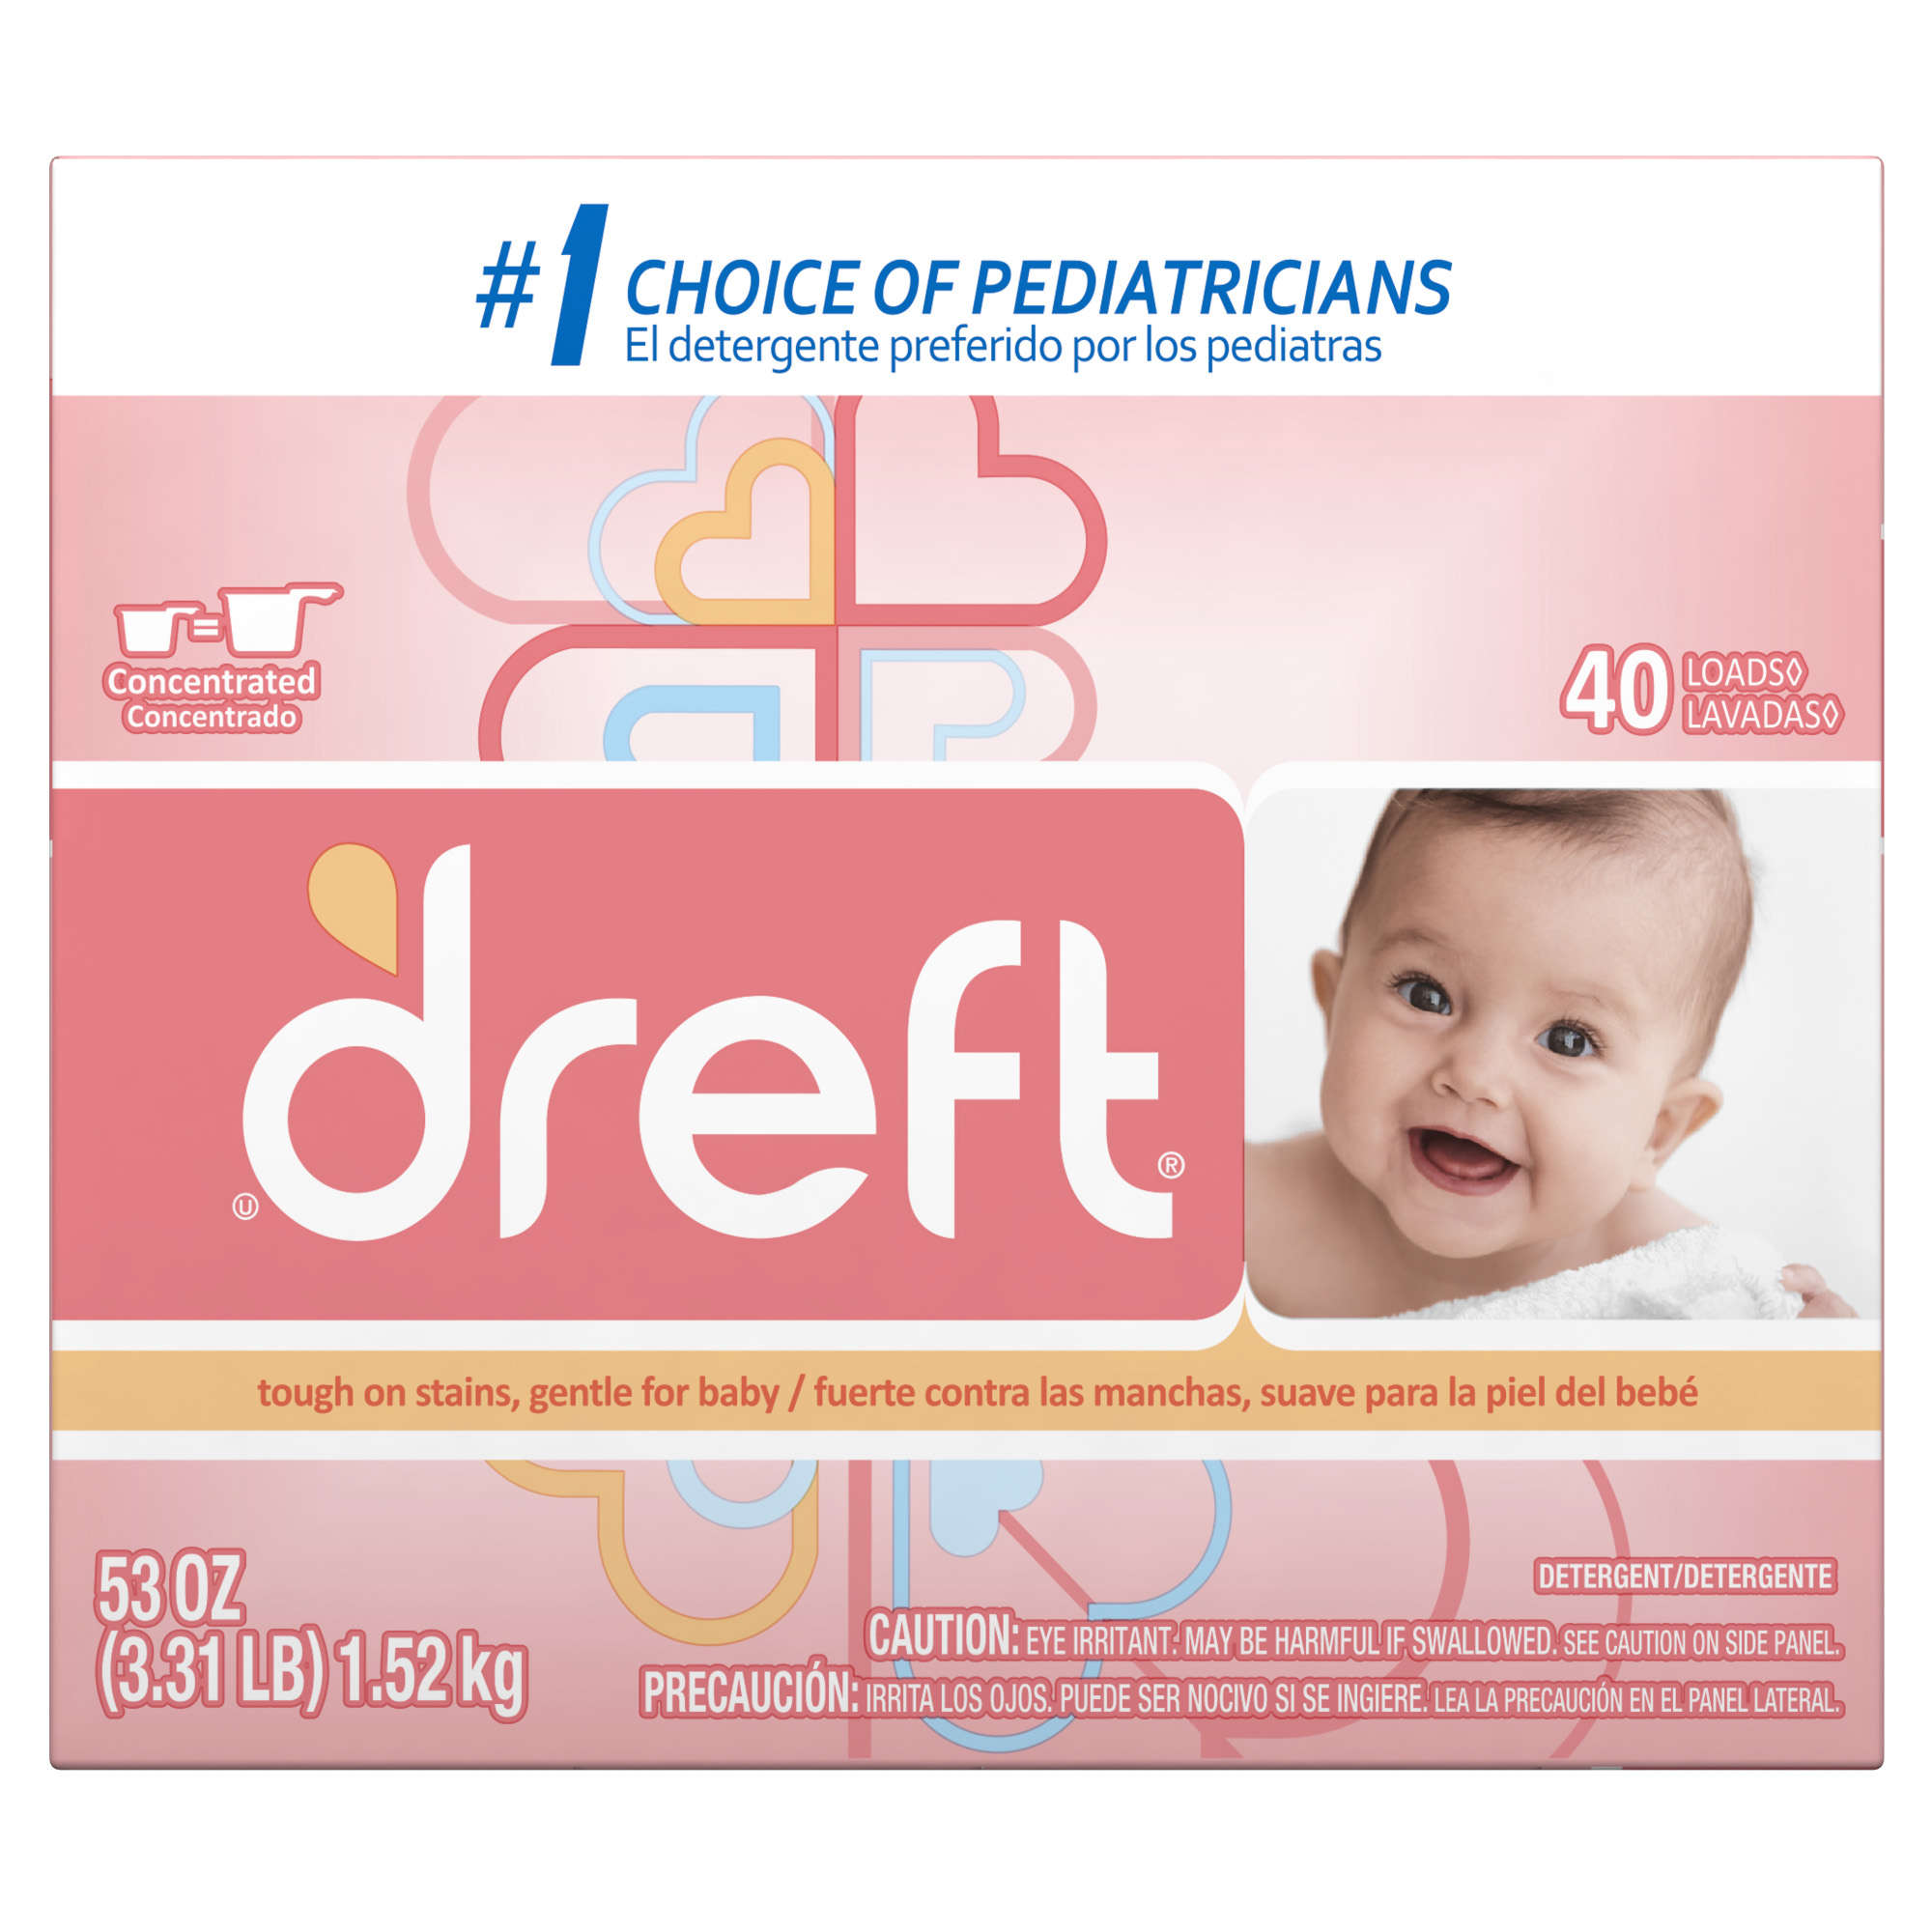 Dreft Baby Original Scent Powder Laundry Detergent, 40 Loads, 53 oz.